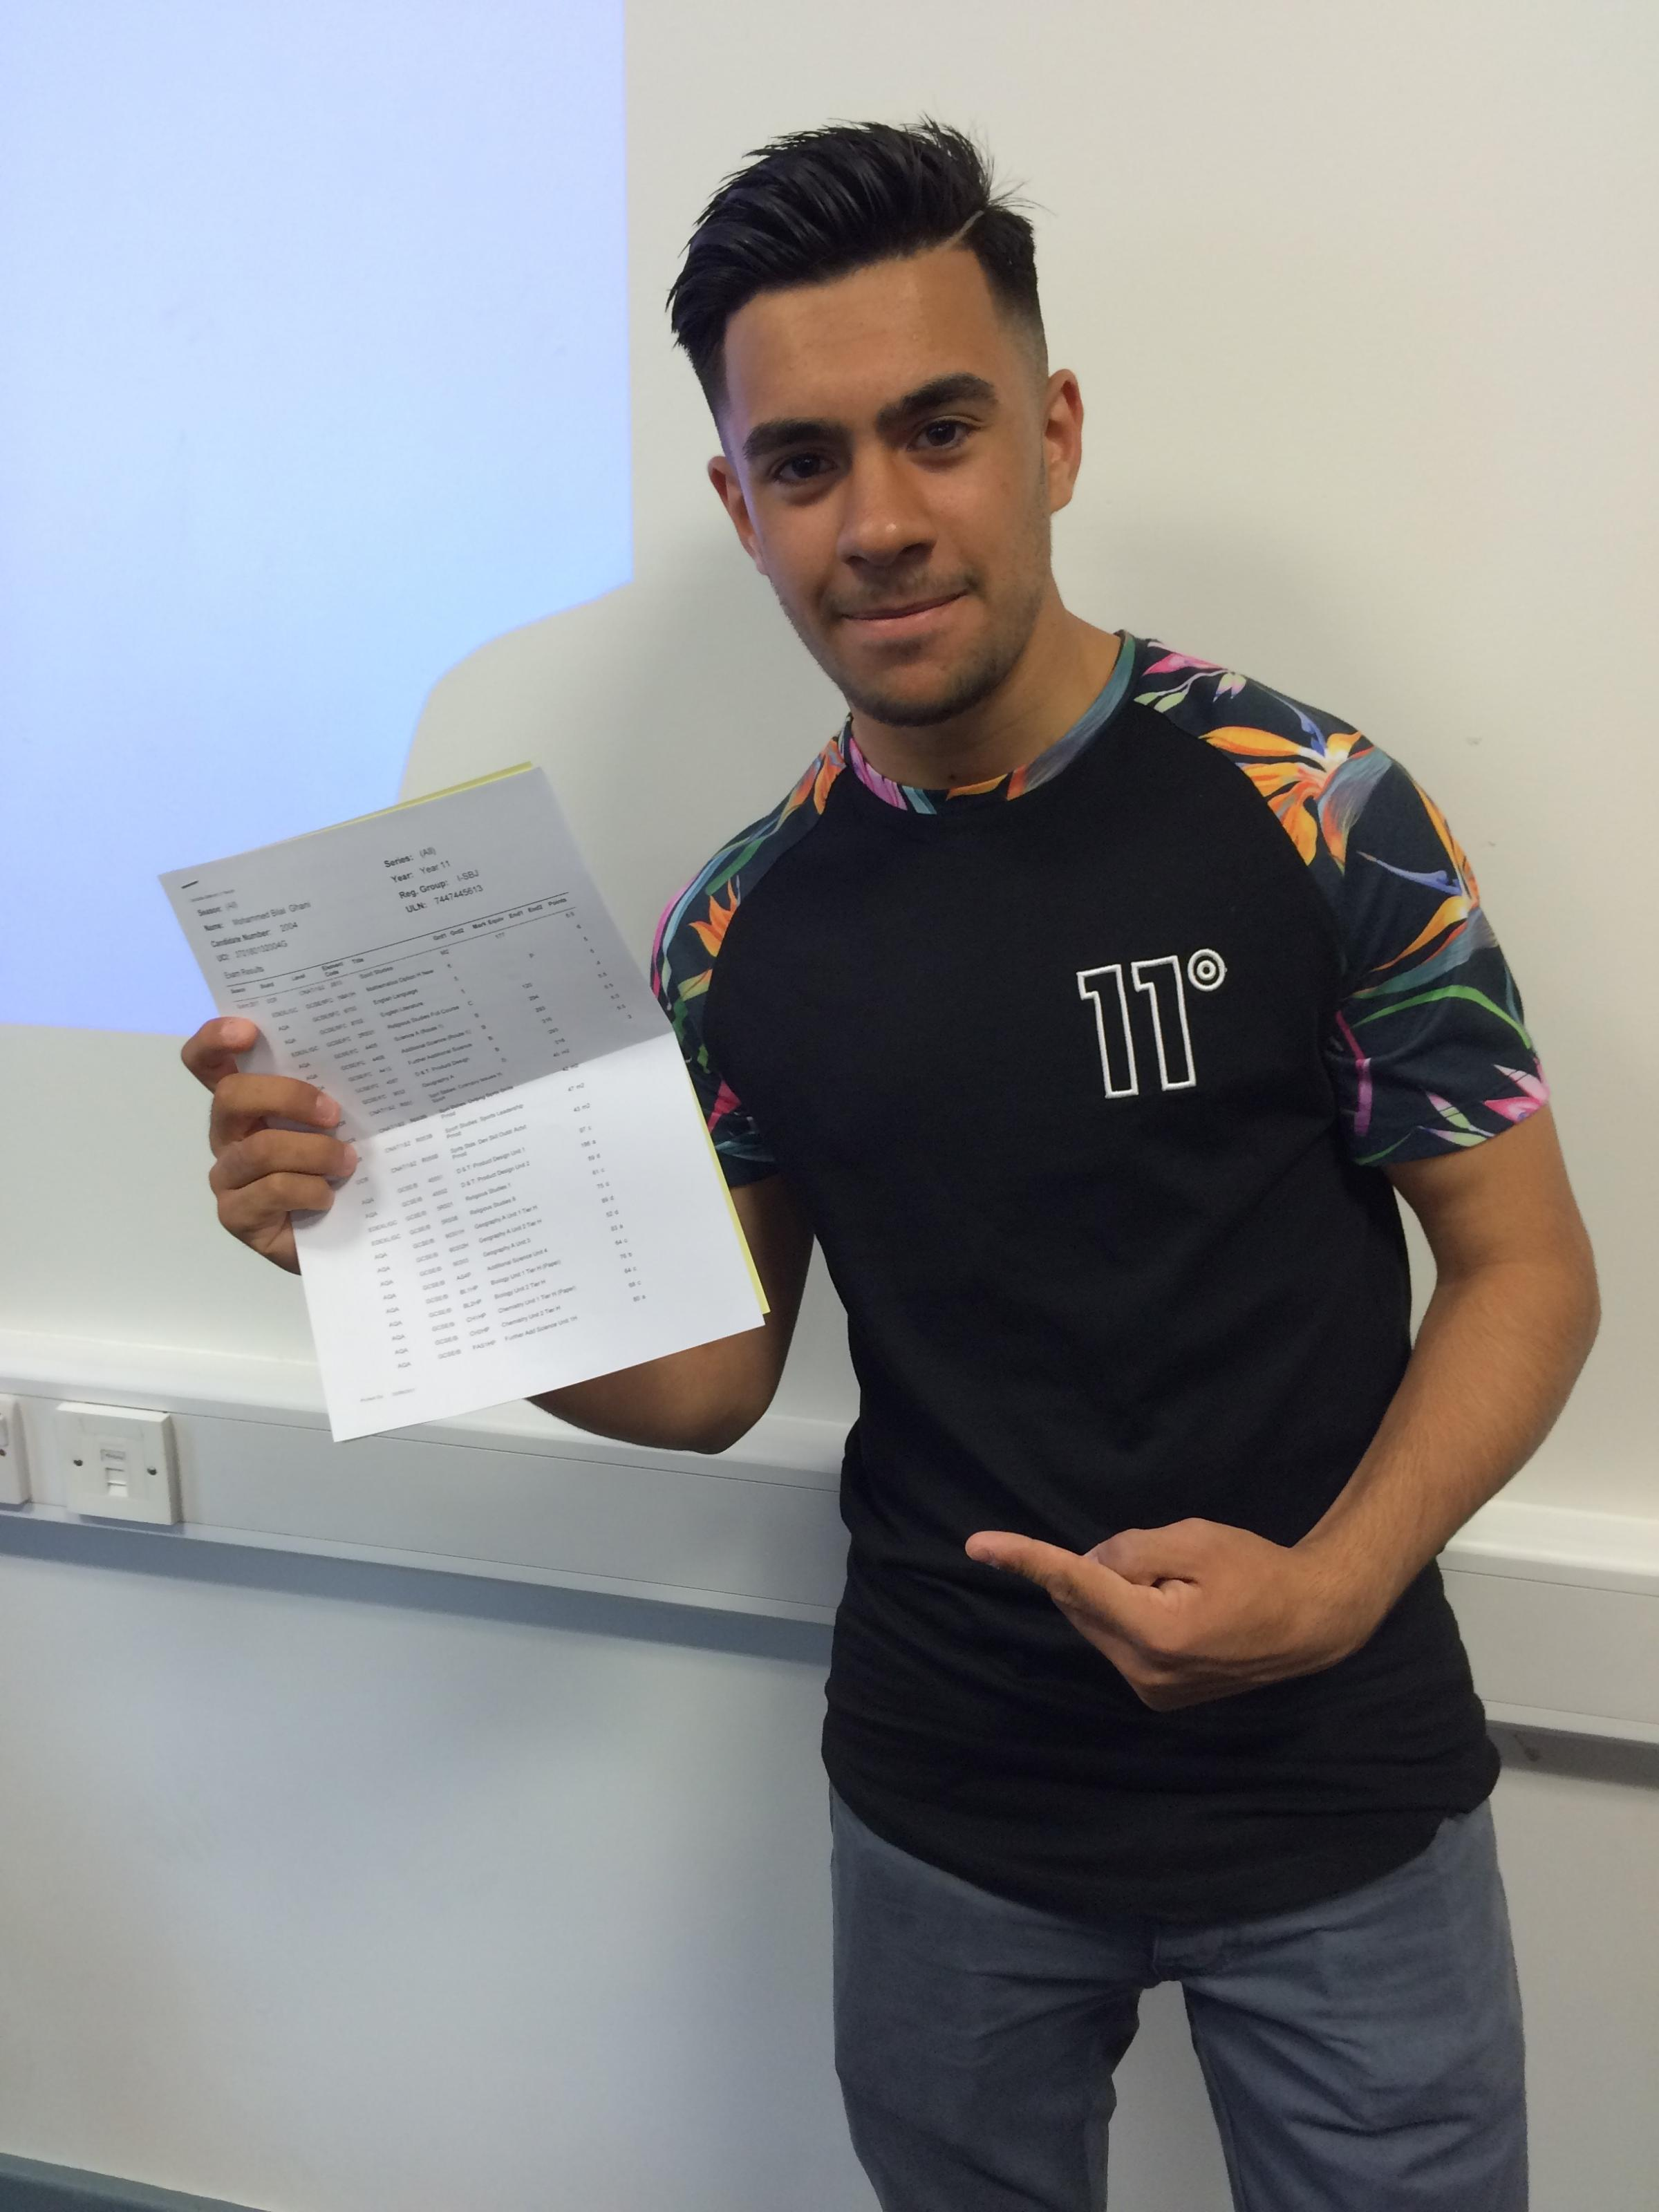 University Academy Keighley student Bilal Ghani worked hard at his GCSEs to impress his mother